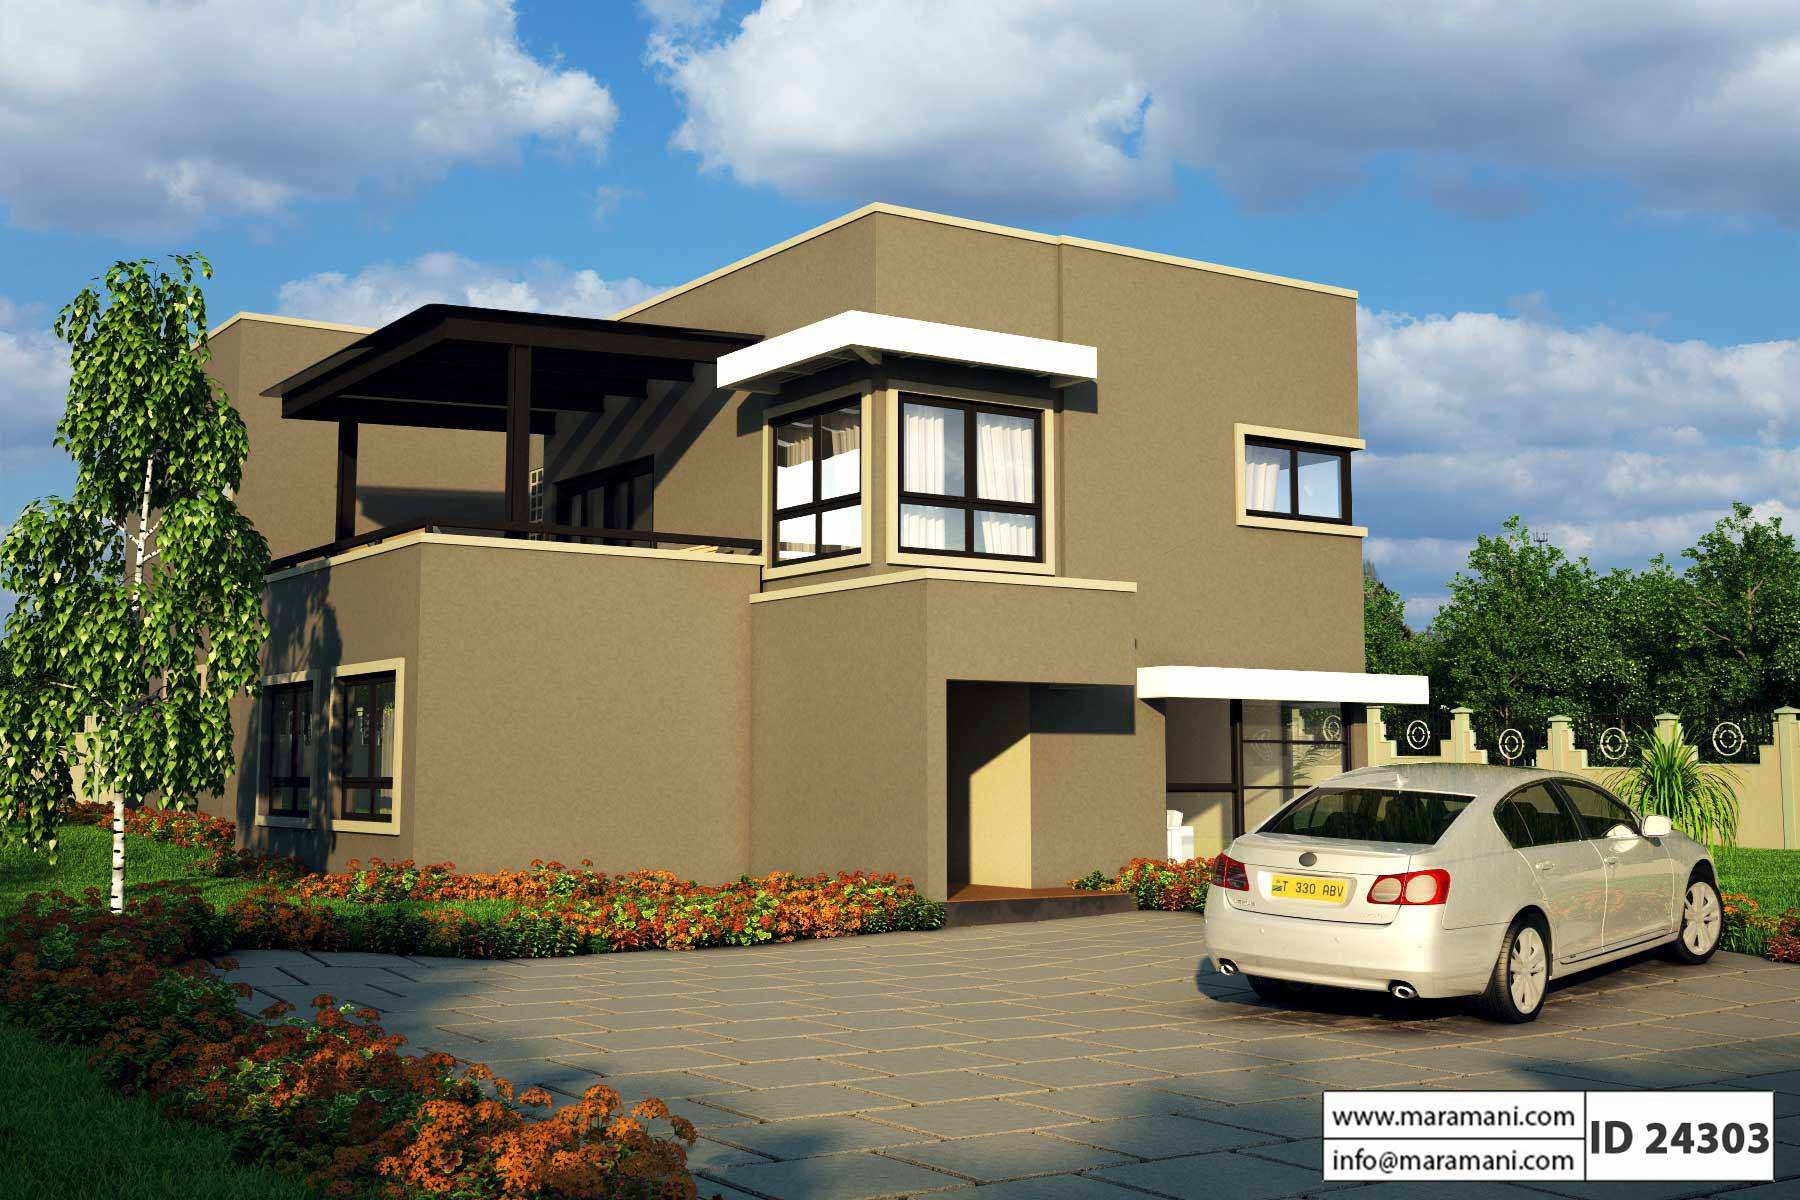 4 Bedroom House Plans Designs for Africa House Plans by Maramani